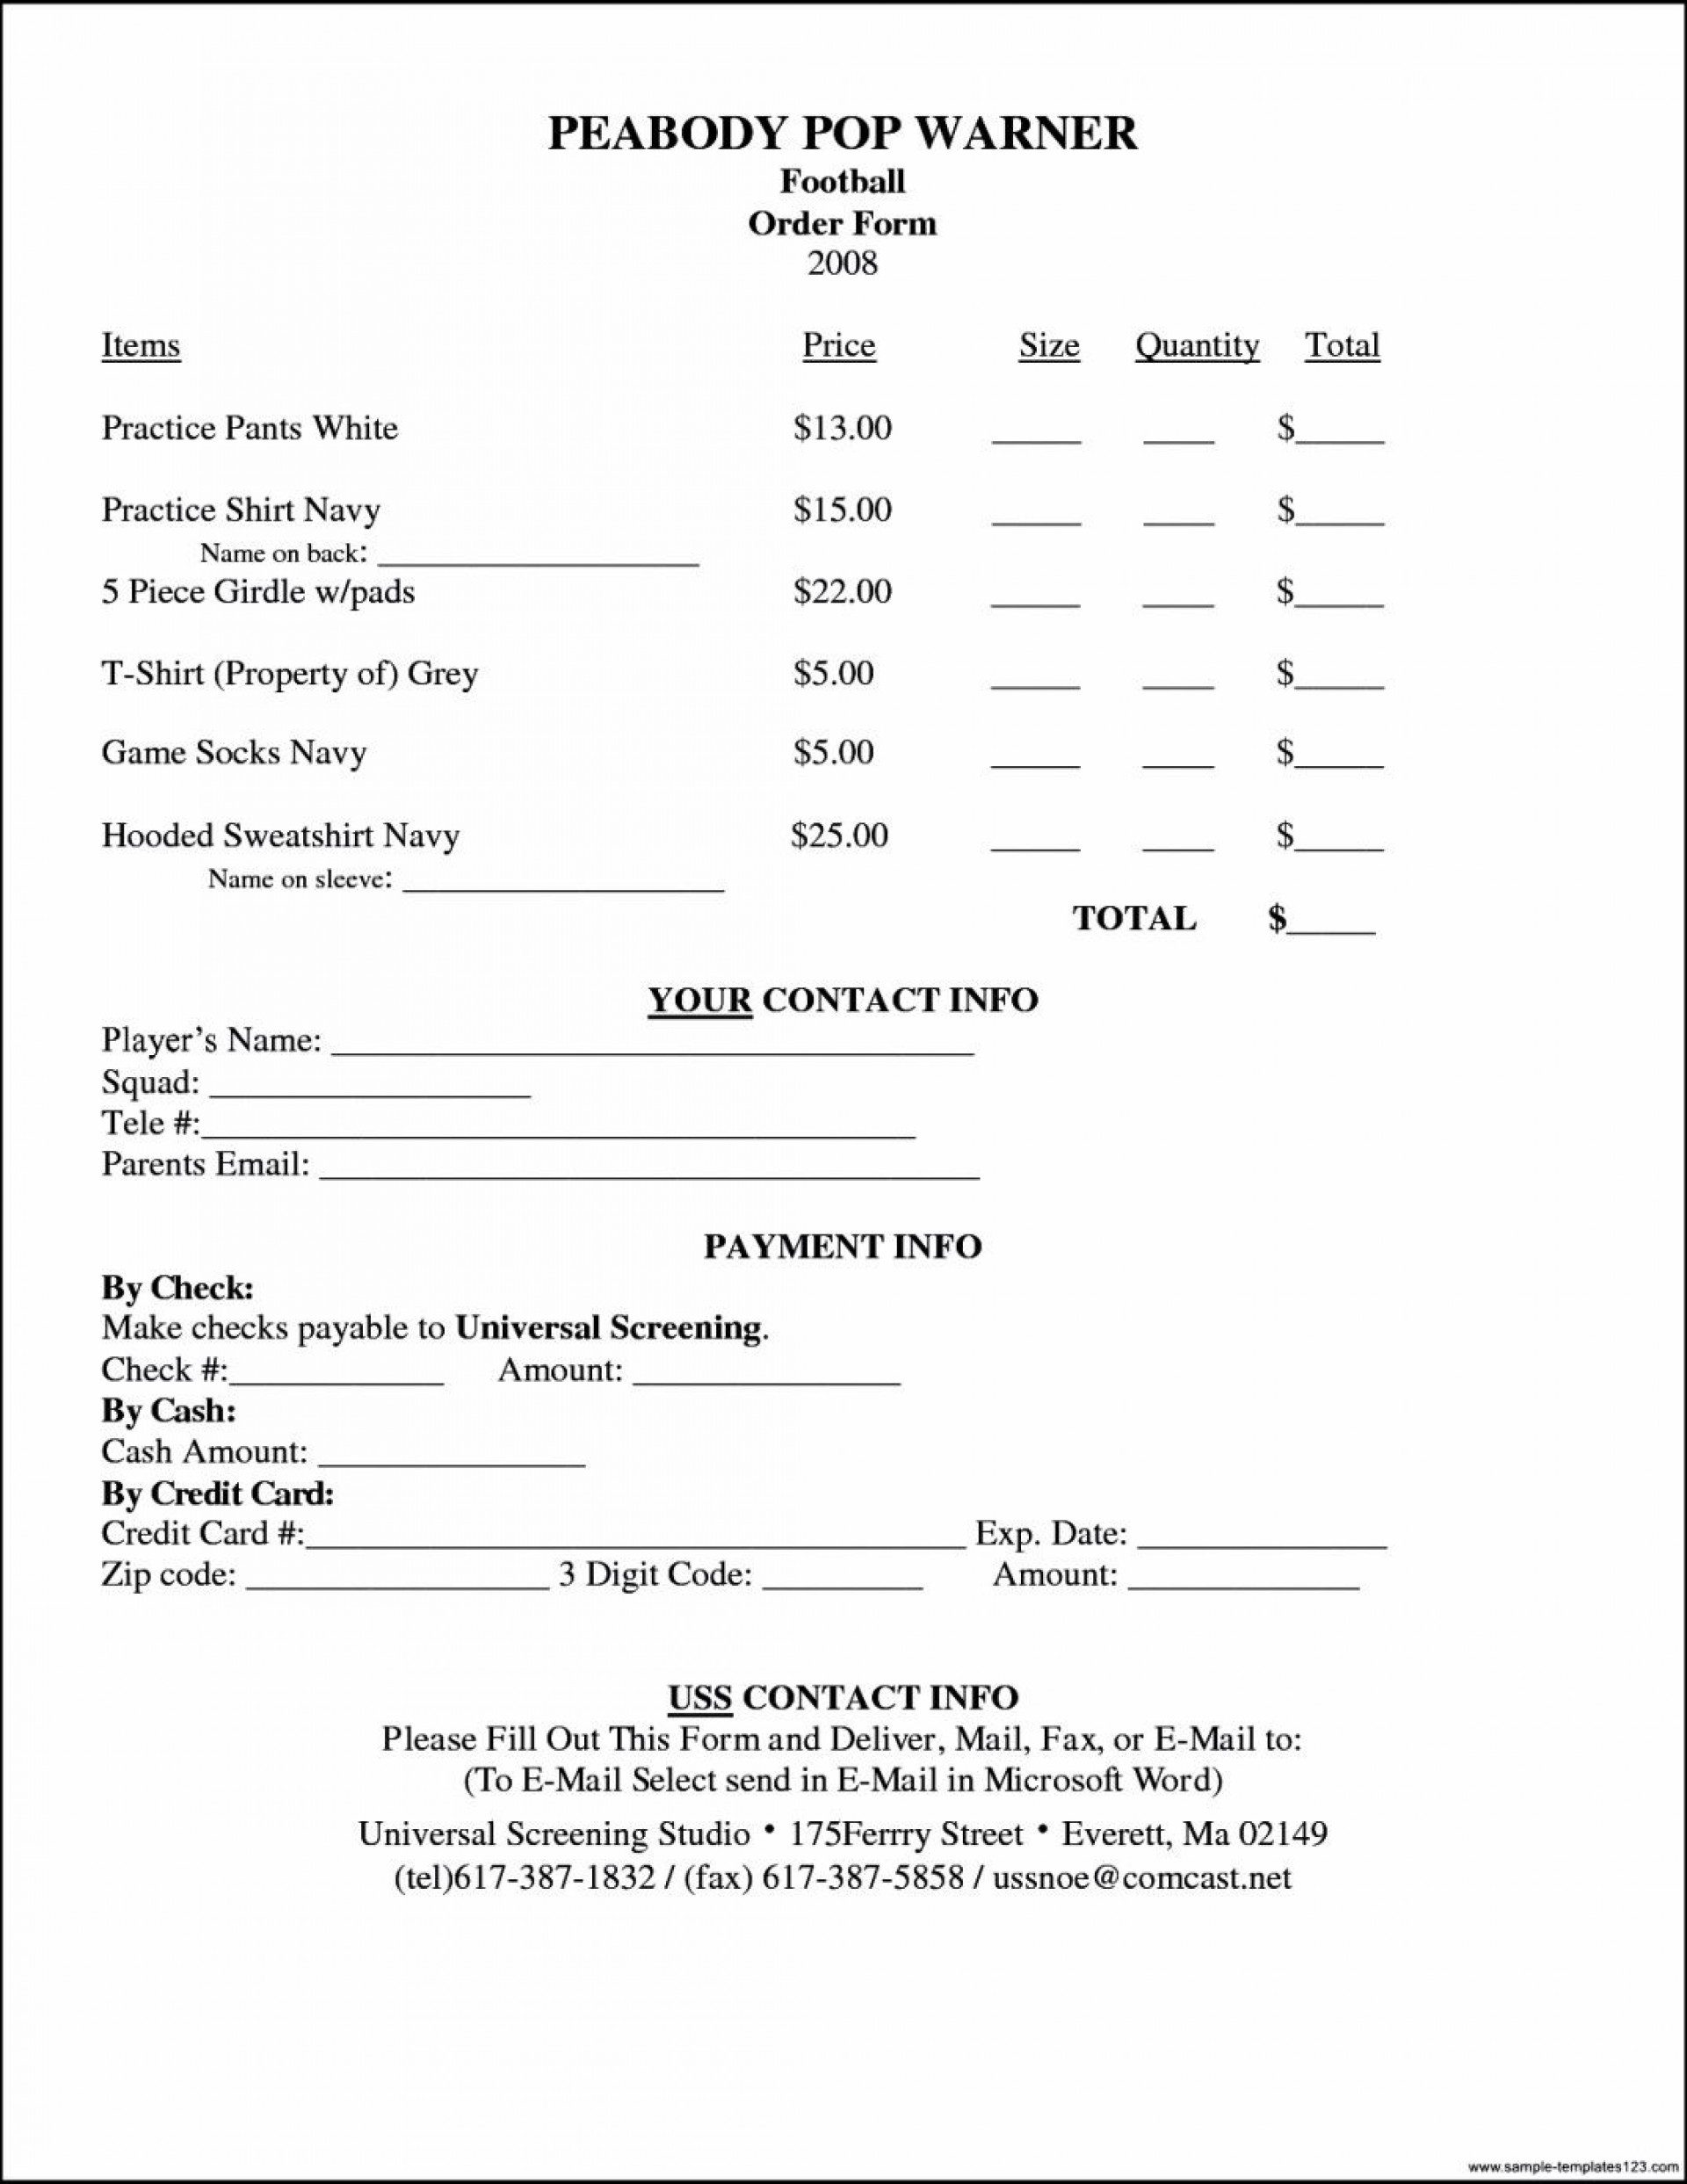 007 Unusual Shirt Order Form Template Concept  Tee T Microsoft Word1920